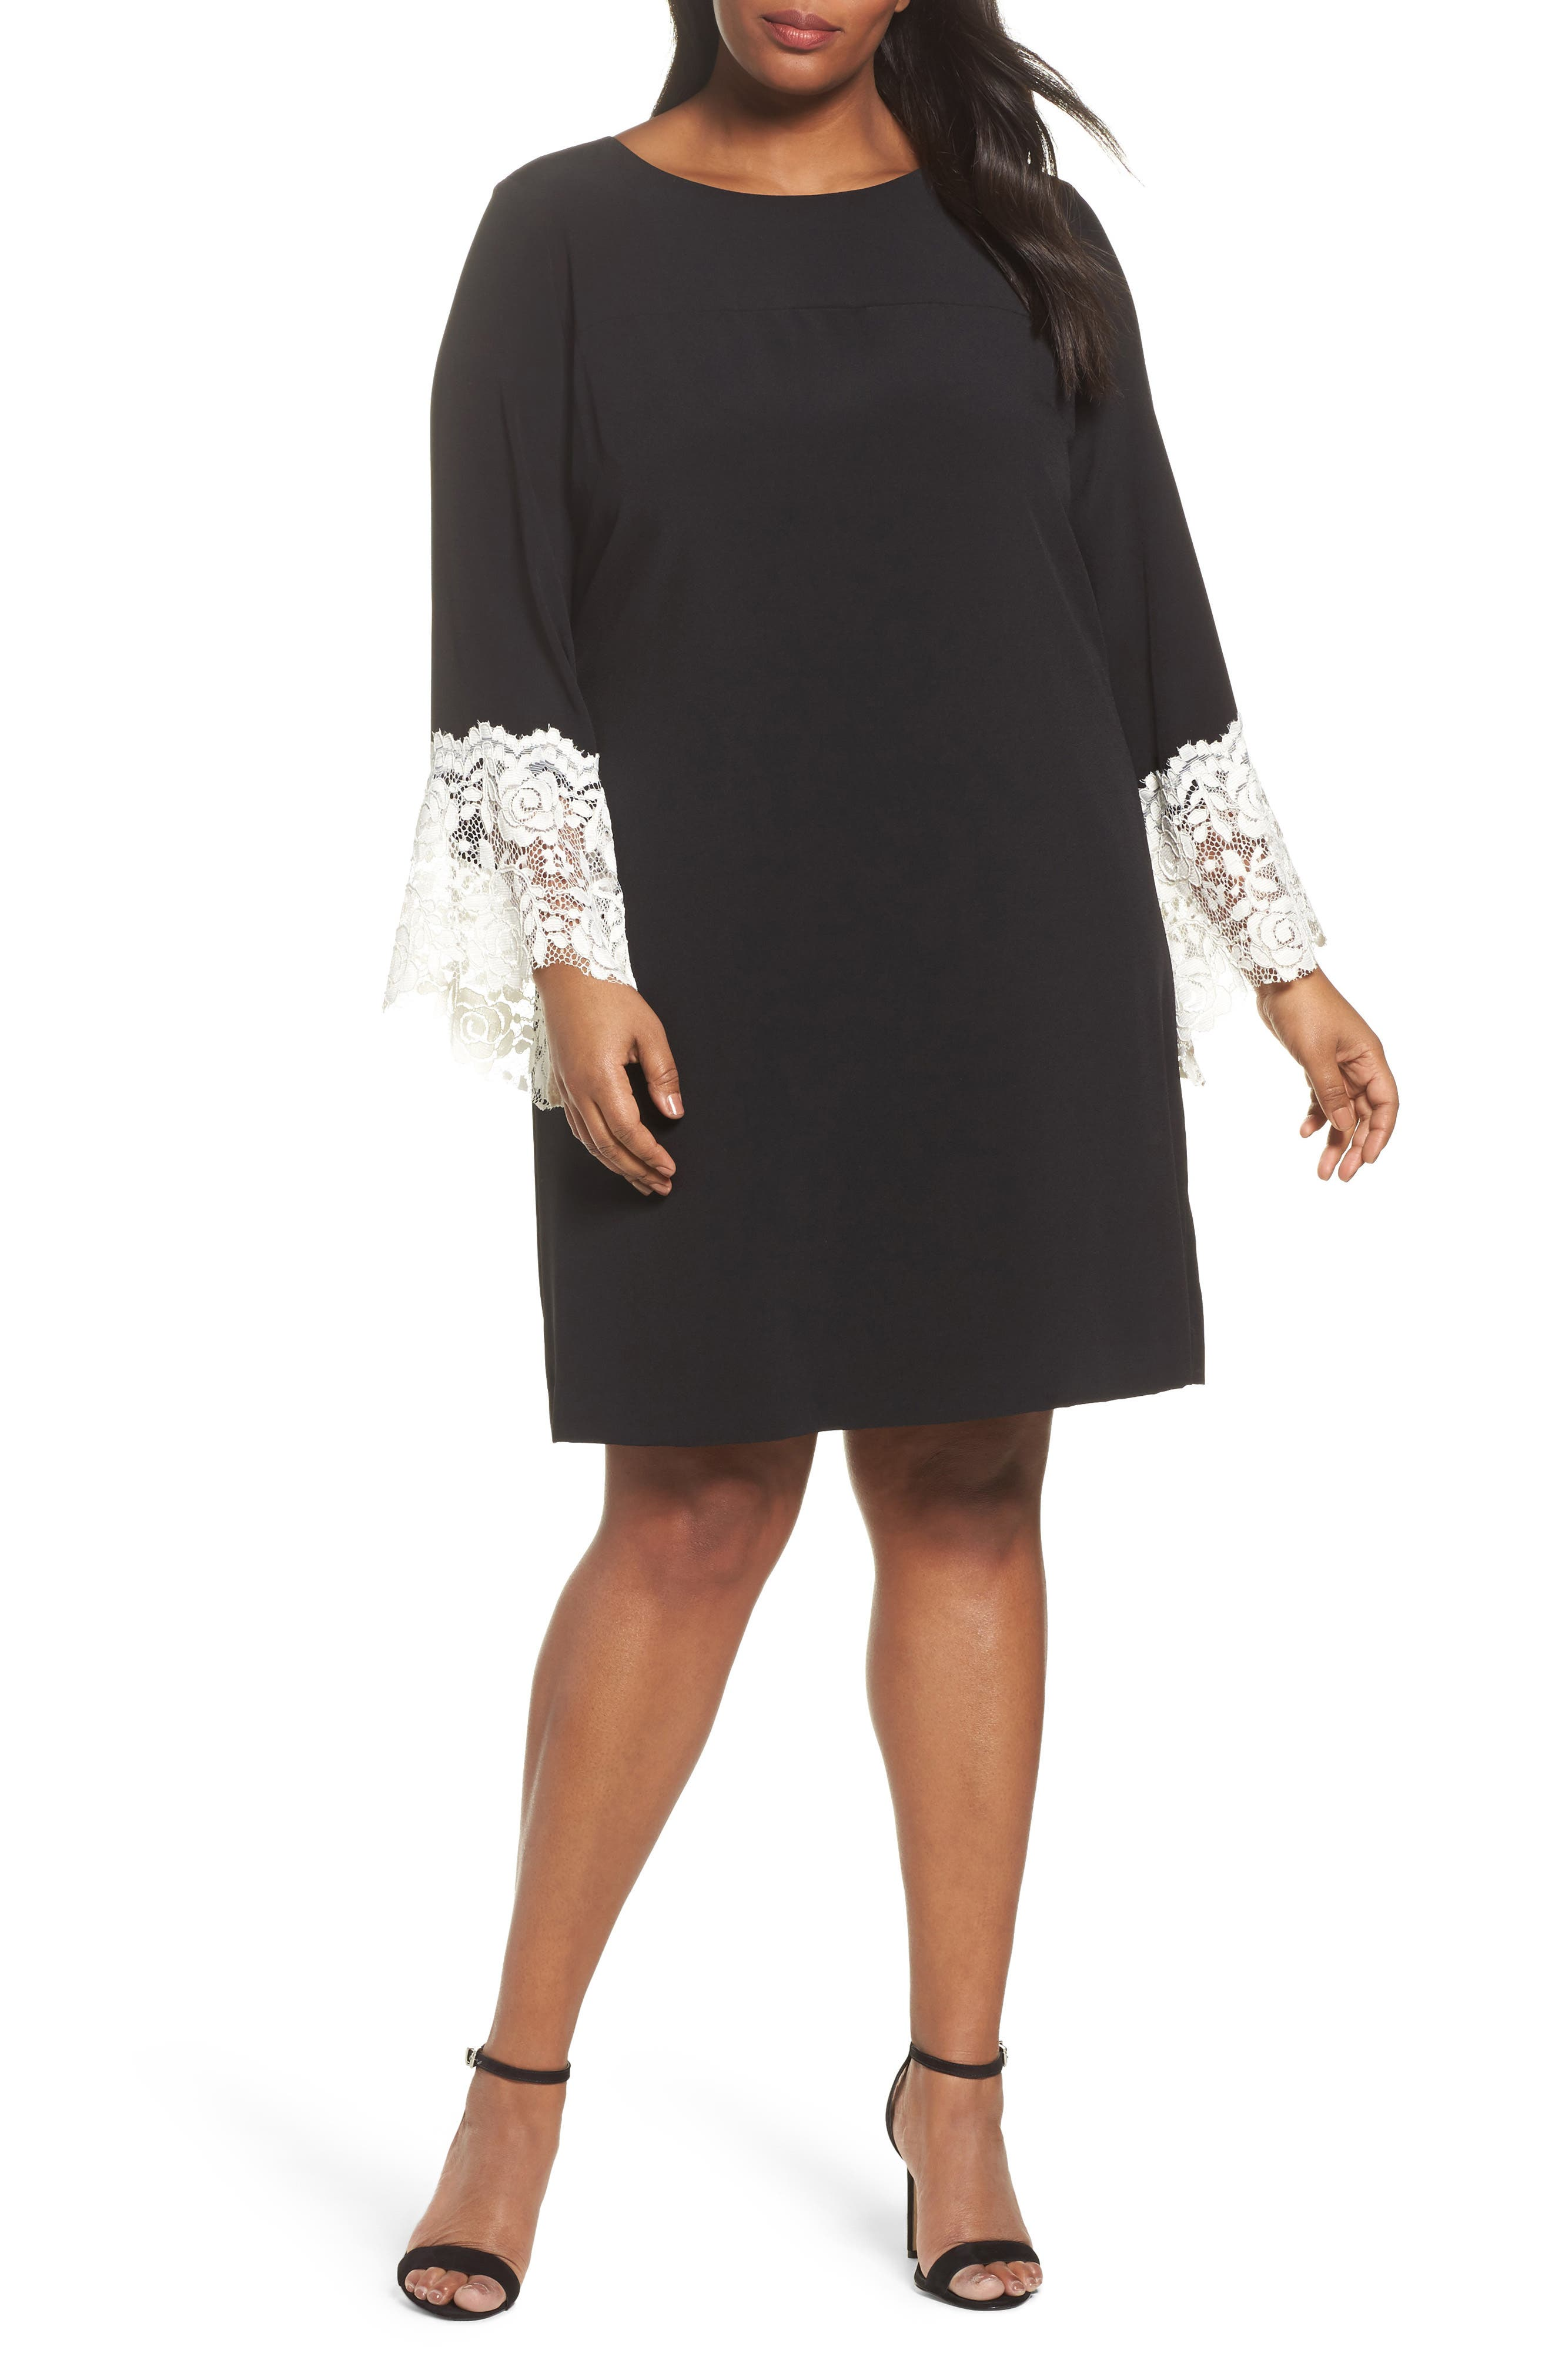 Lace Cuff Shift Dress,                             Main thumbnail 1, color,                             Black/ Ivory